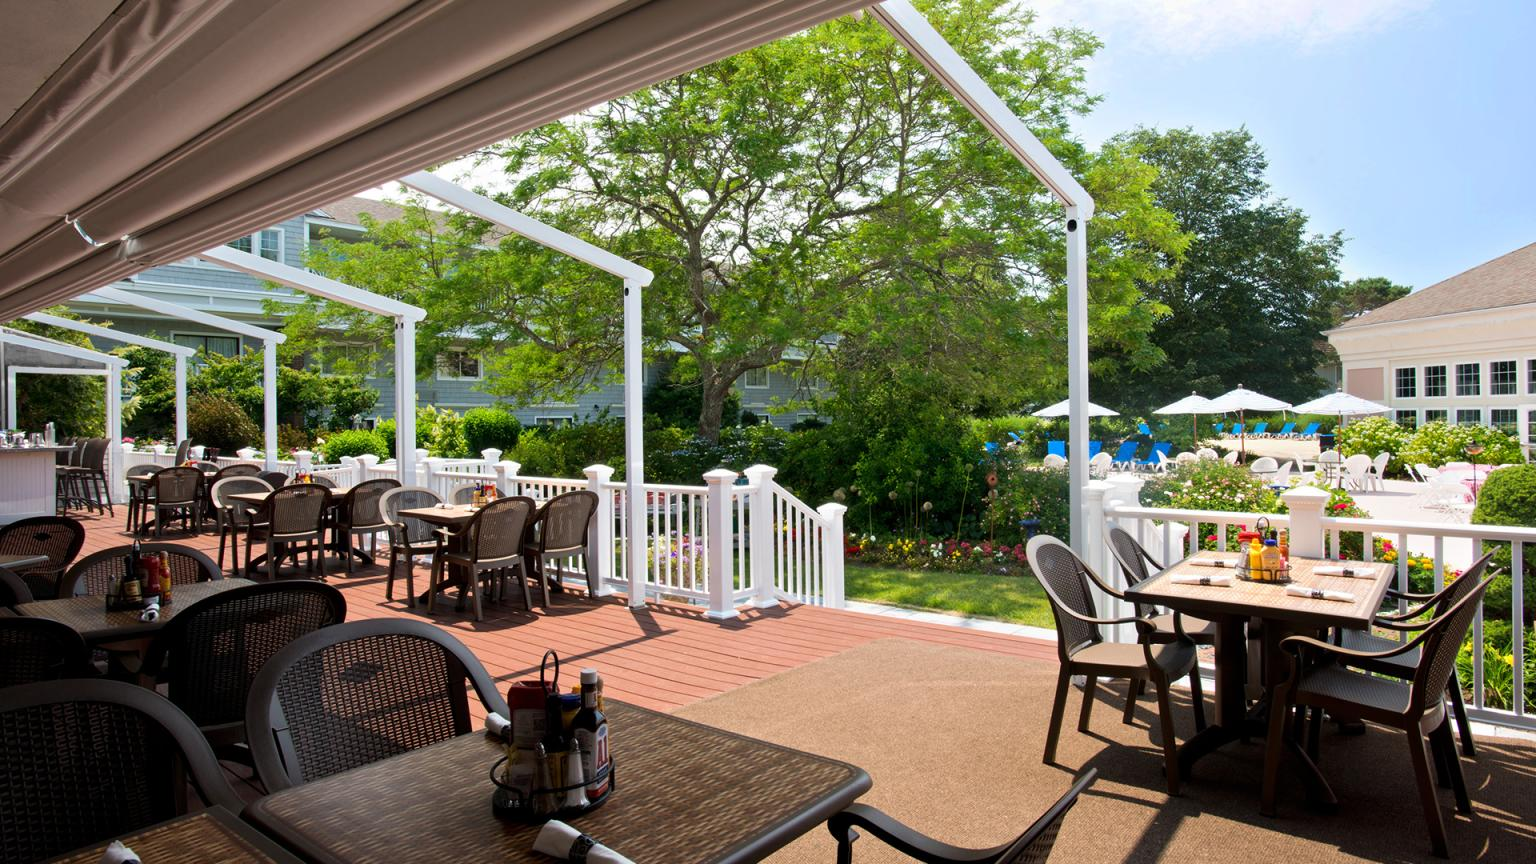 Outdoor dining and entertainment on the Deck